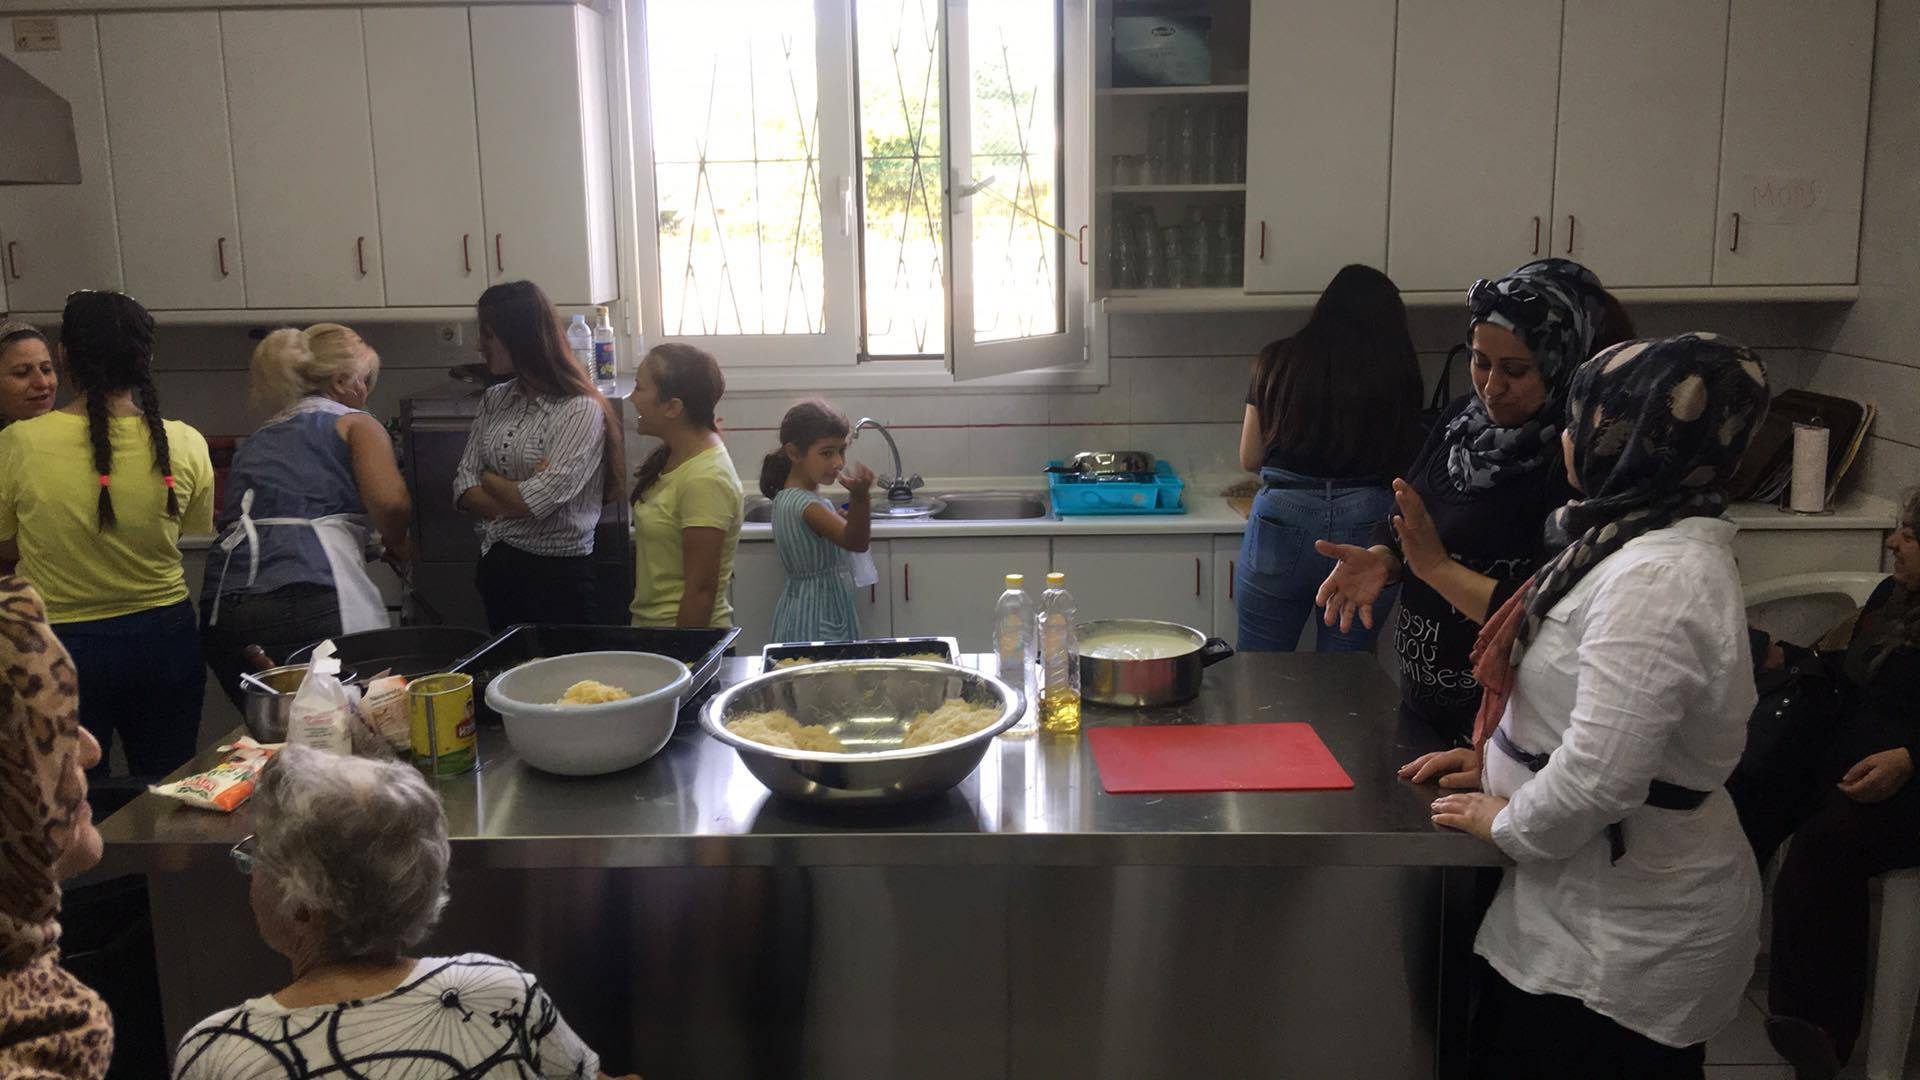 A time for sharing and talk as the women bake sweets.